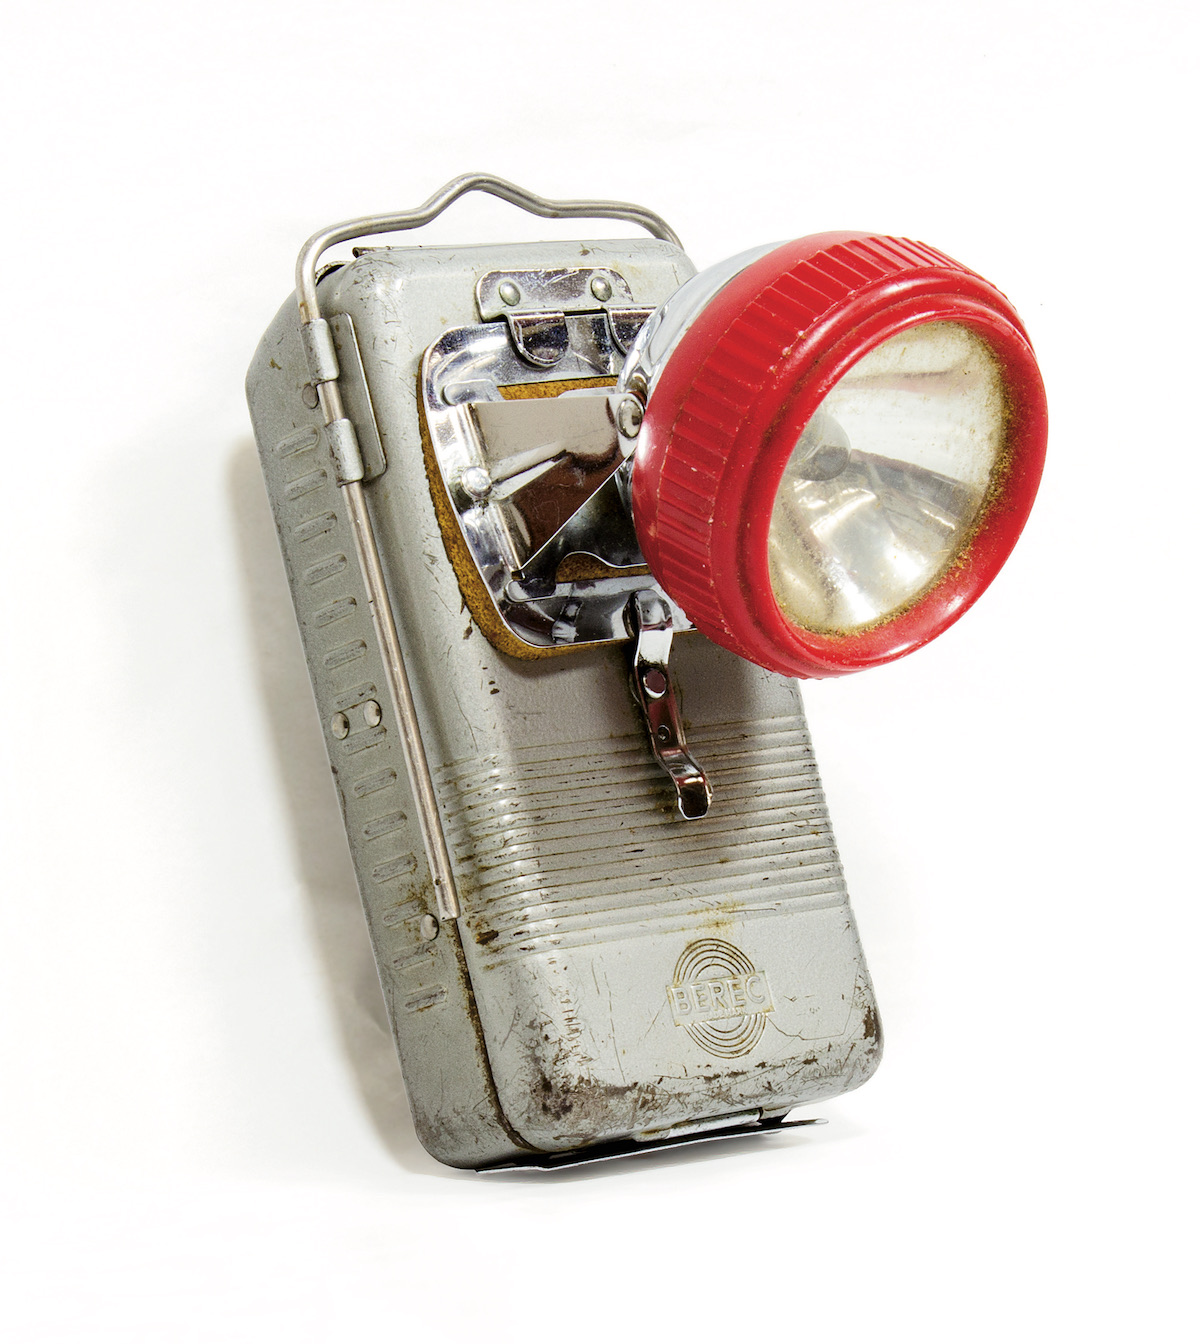 A Berec headlamp used by Martin Mushkin from the mid-1950s until 1980. [Photo] Michelle Hoffman